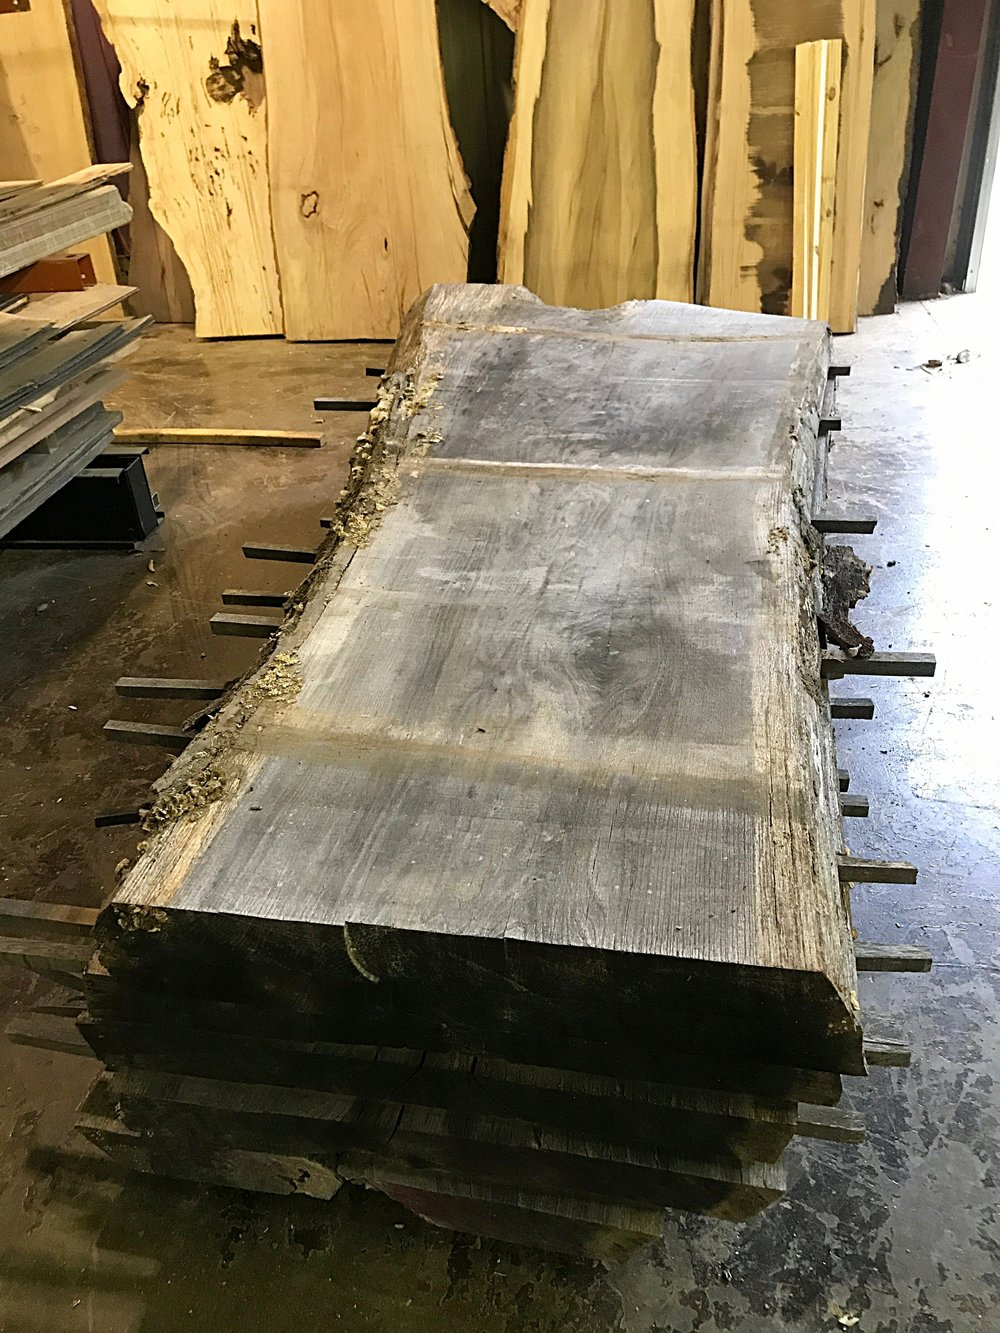 The kiln dried slabs are brought into the warehouse by forklift to be surfaced on the sanders.